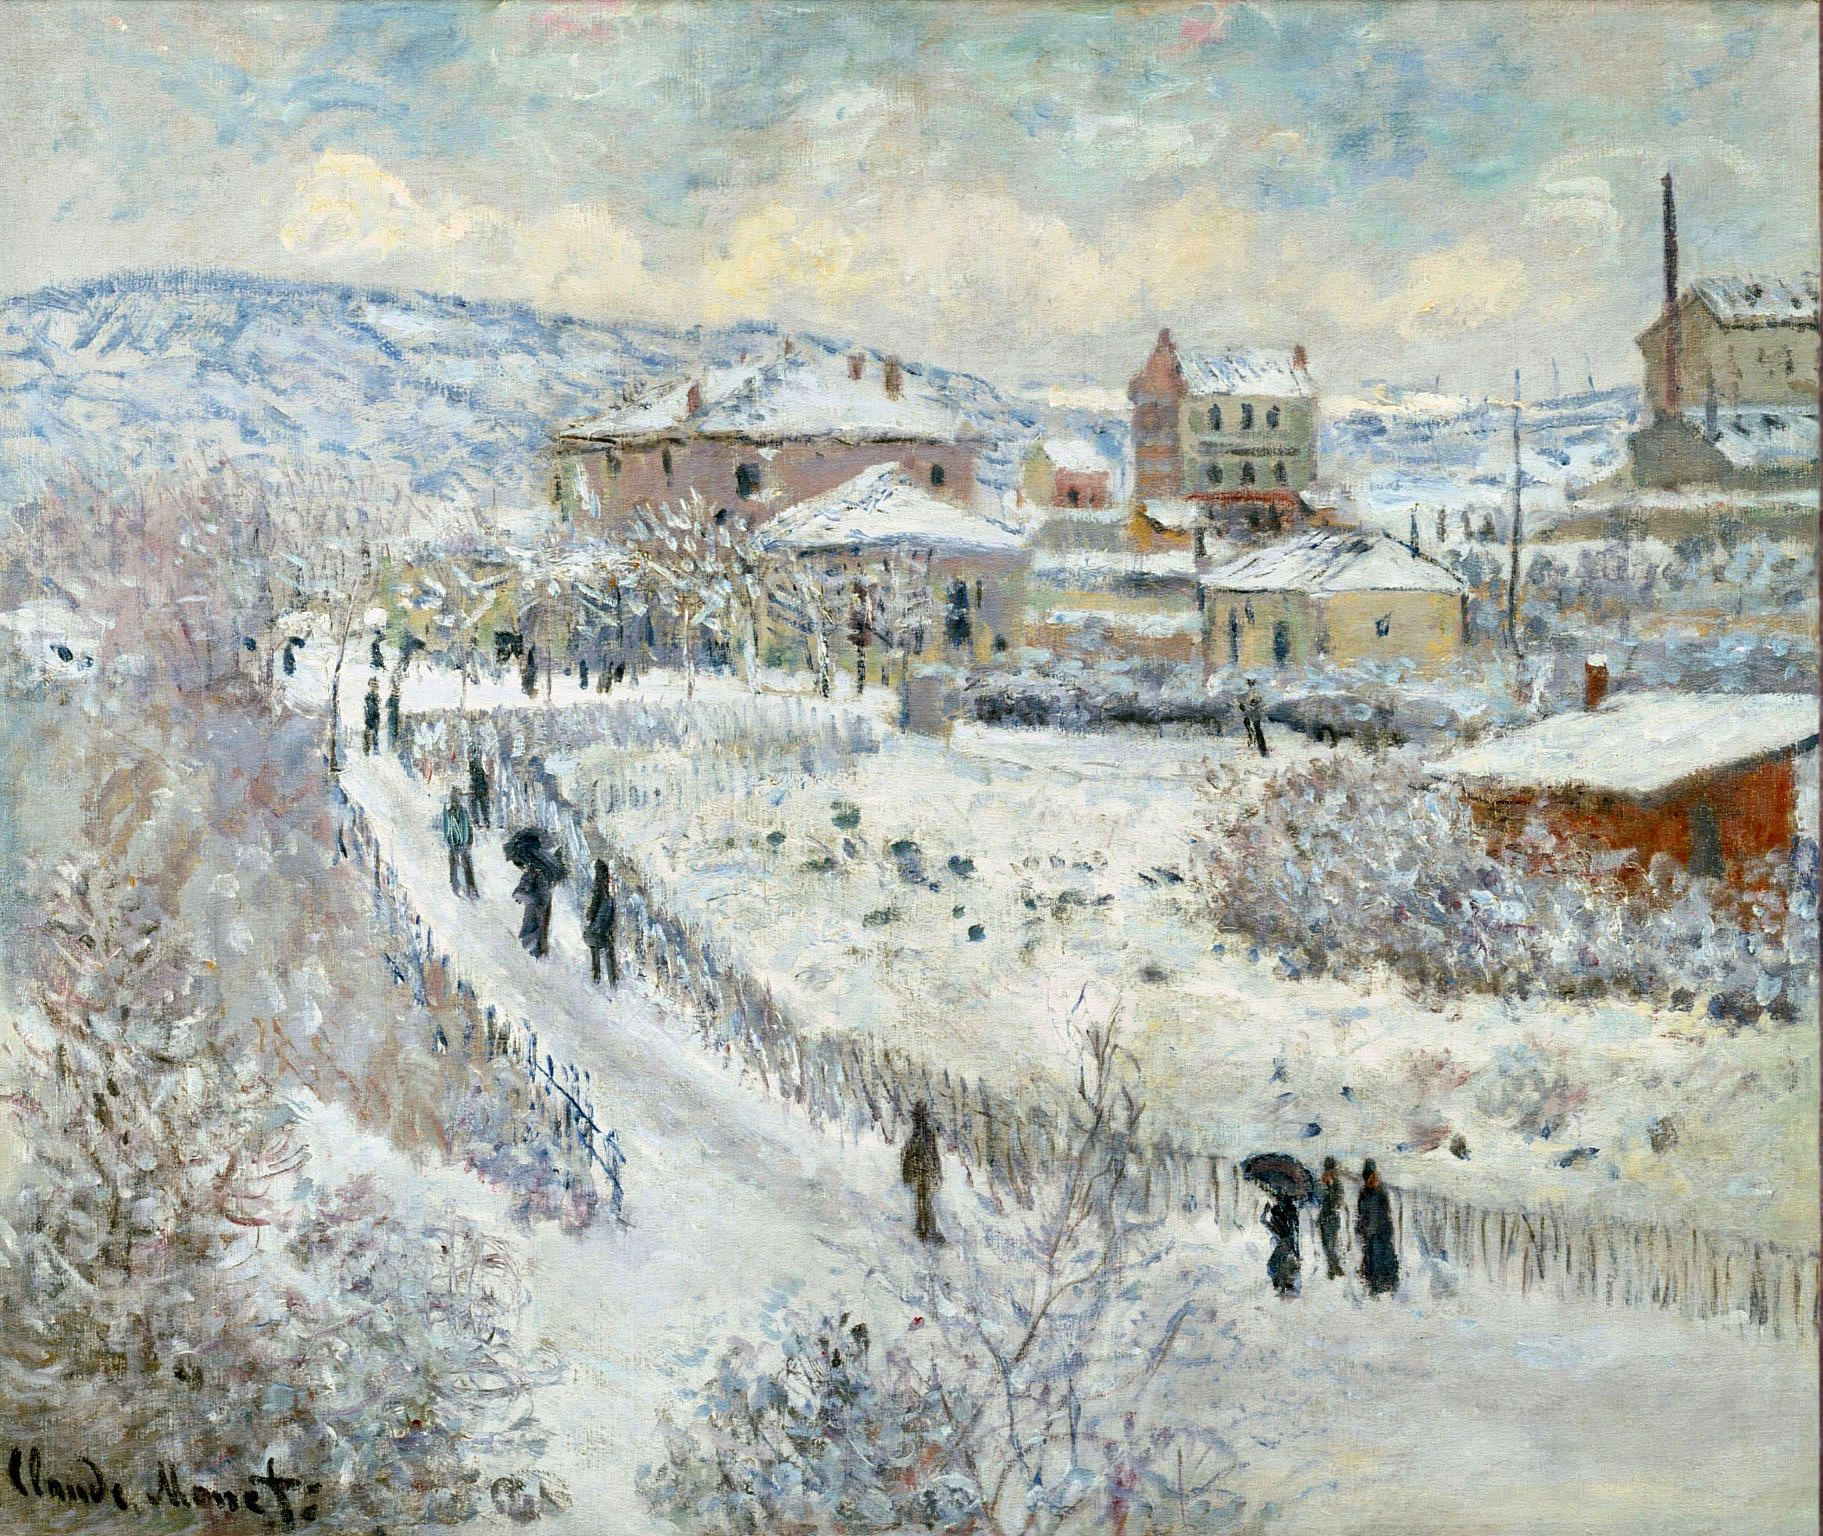 View of Argenteuil in the Snow by @claude_monet #impressionism